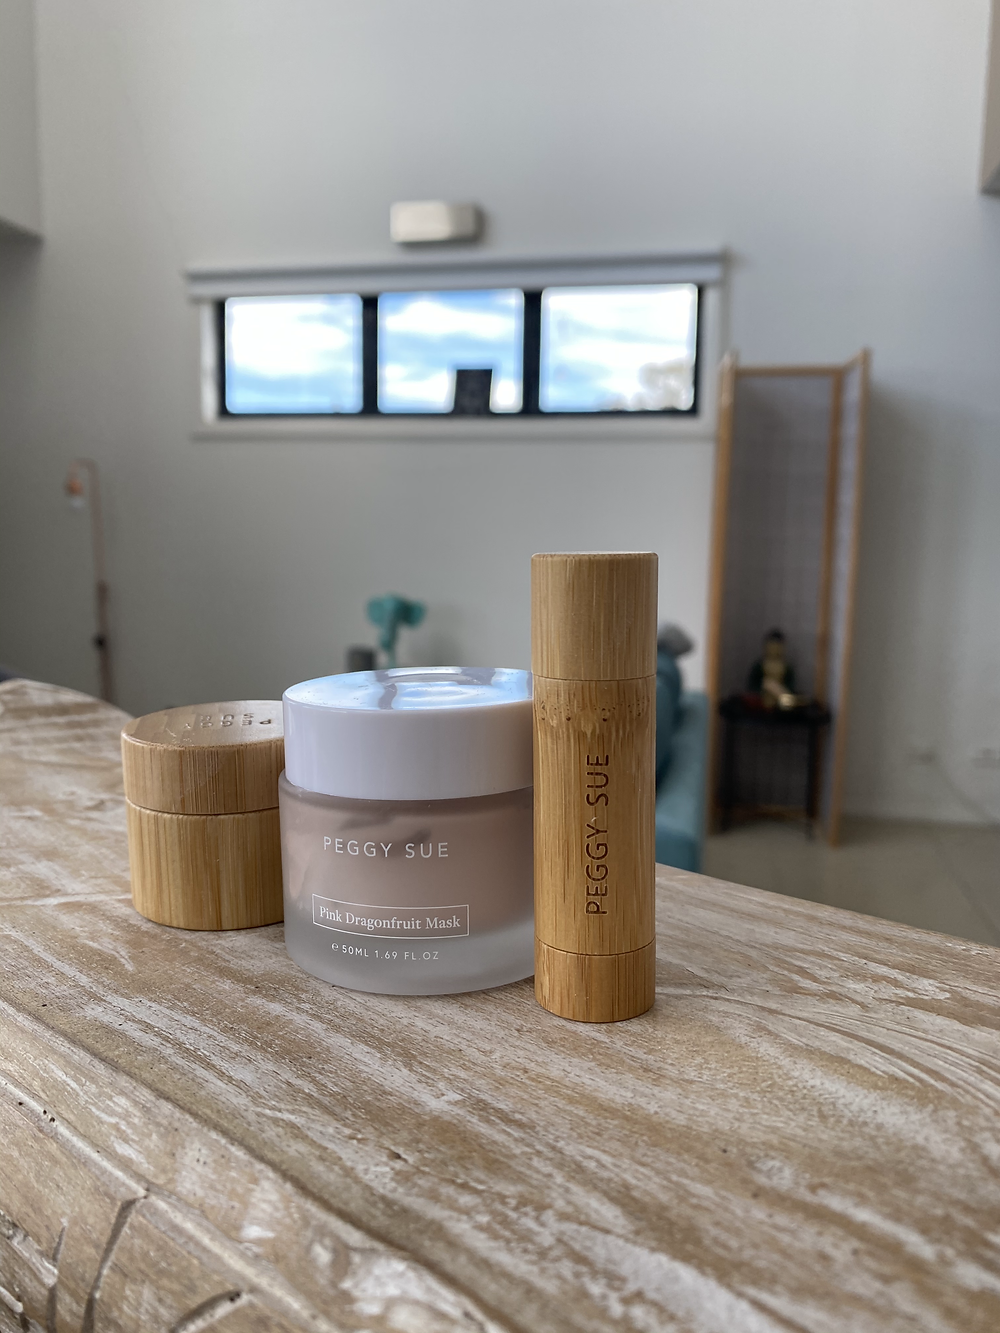 Peggy Sue Sustainable Skincare